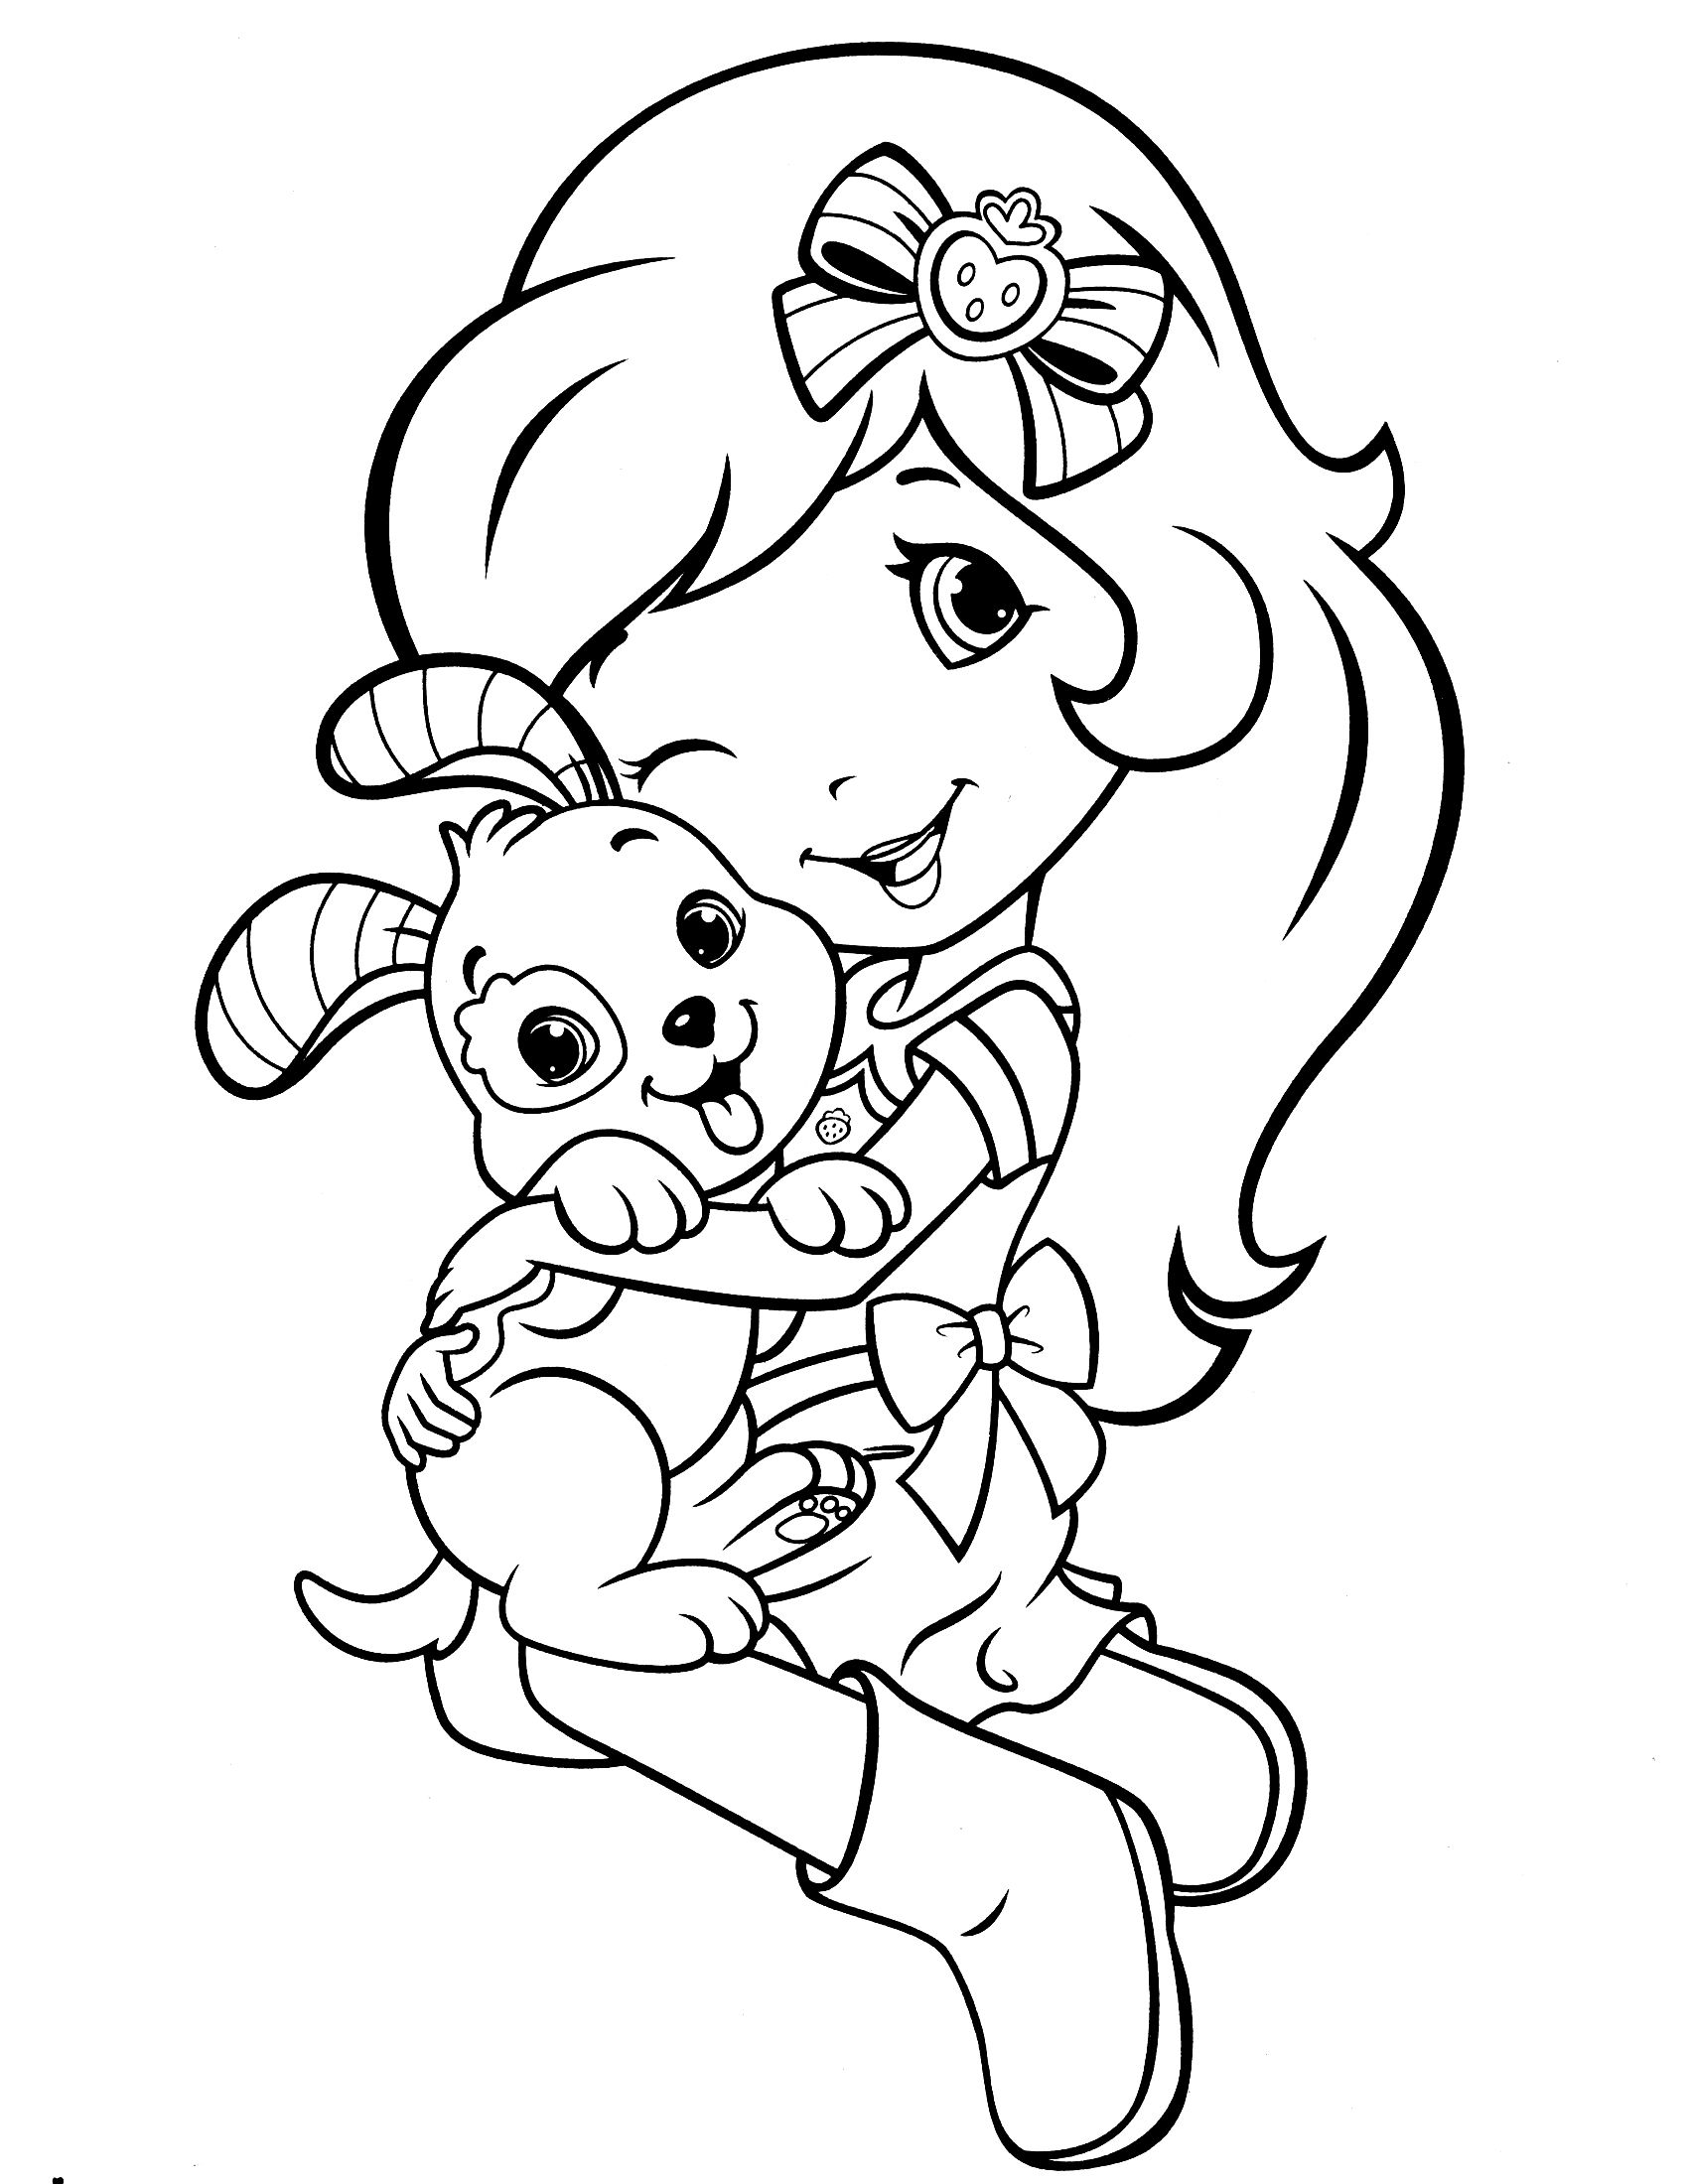 new strawberry shortcake coloring pages printable free printable strawberry shortcake coloring pages for kids printable coloring pages shortcake new strawberry